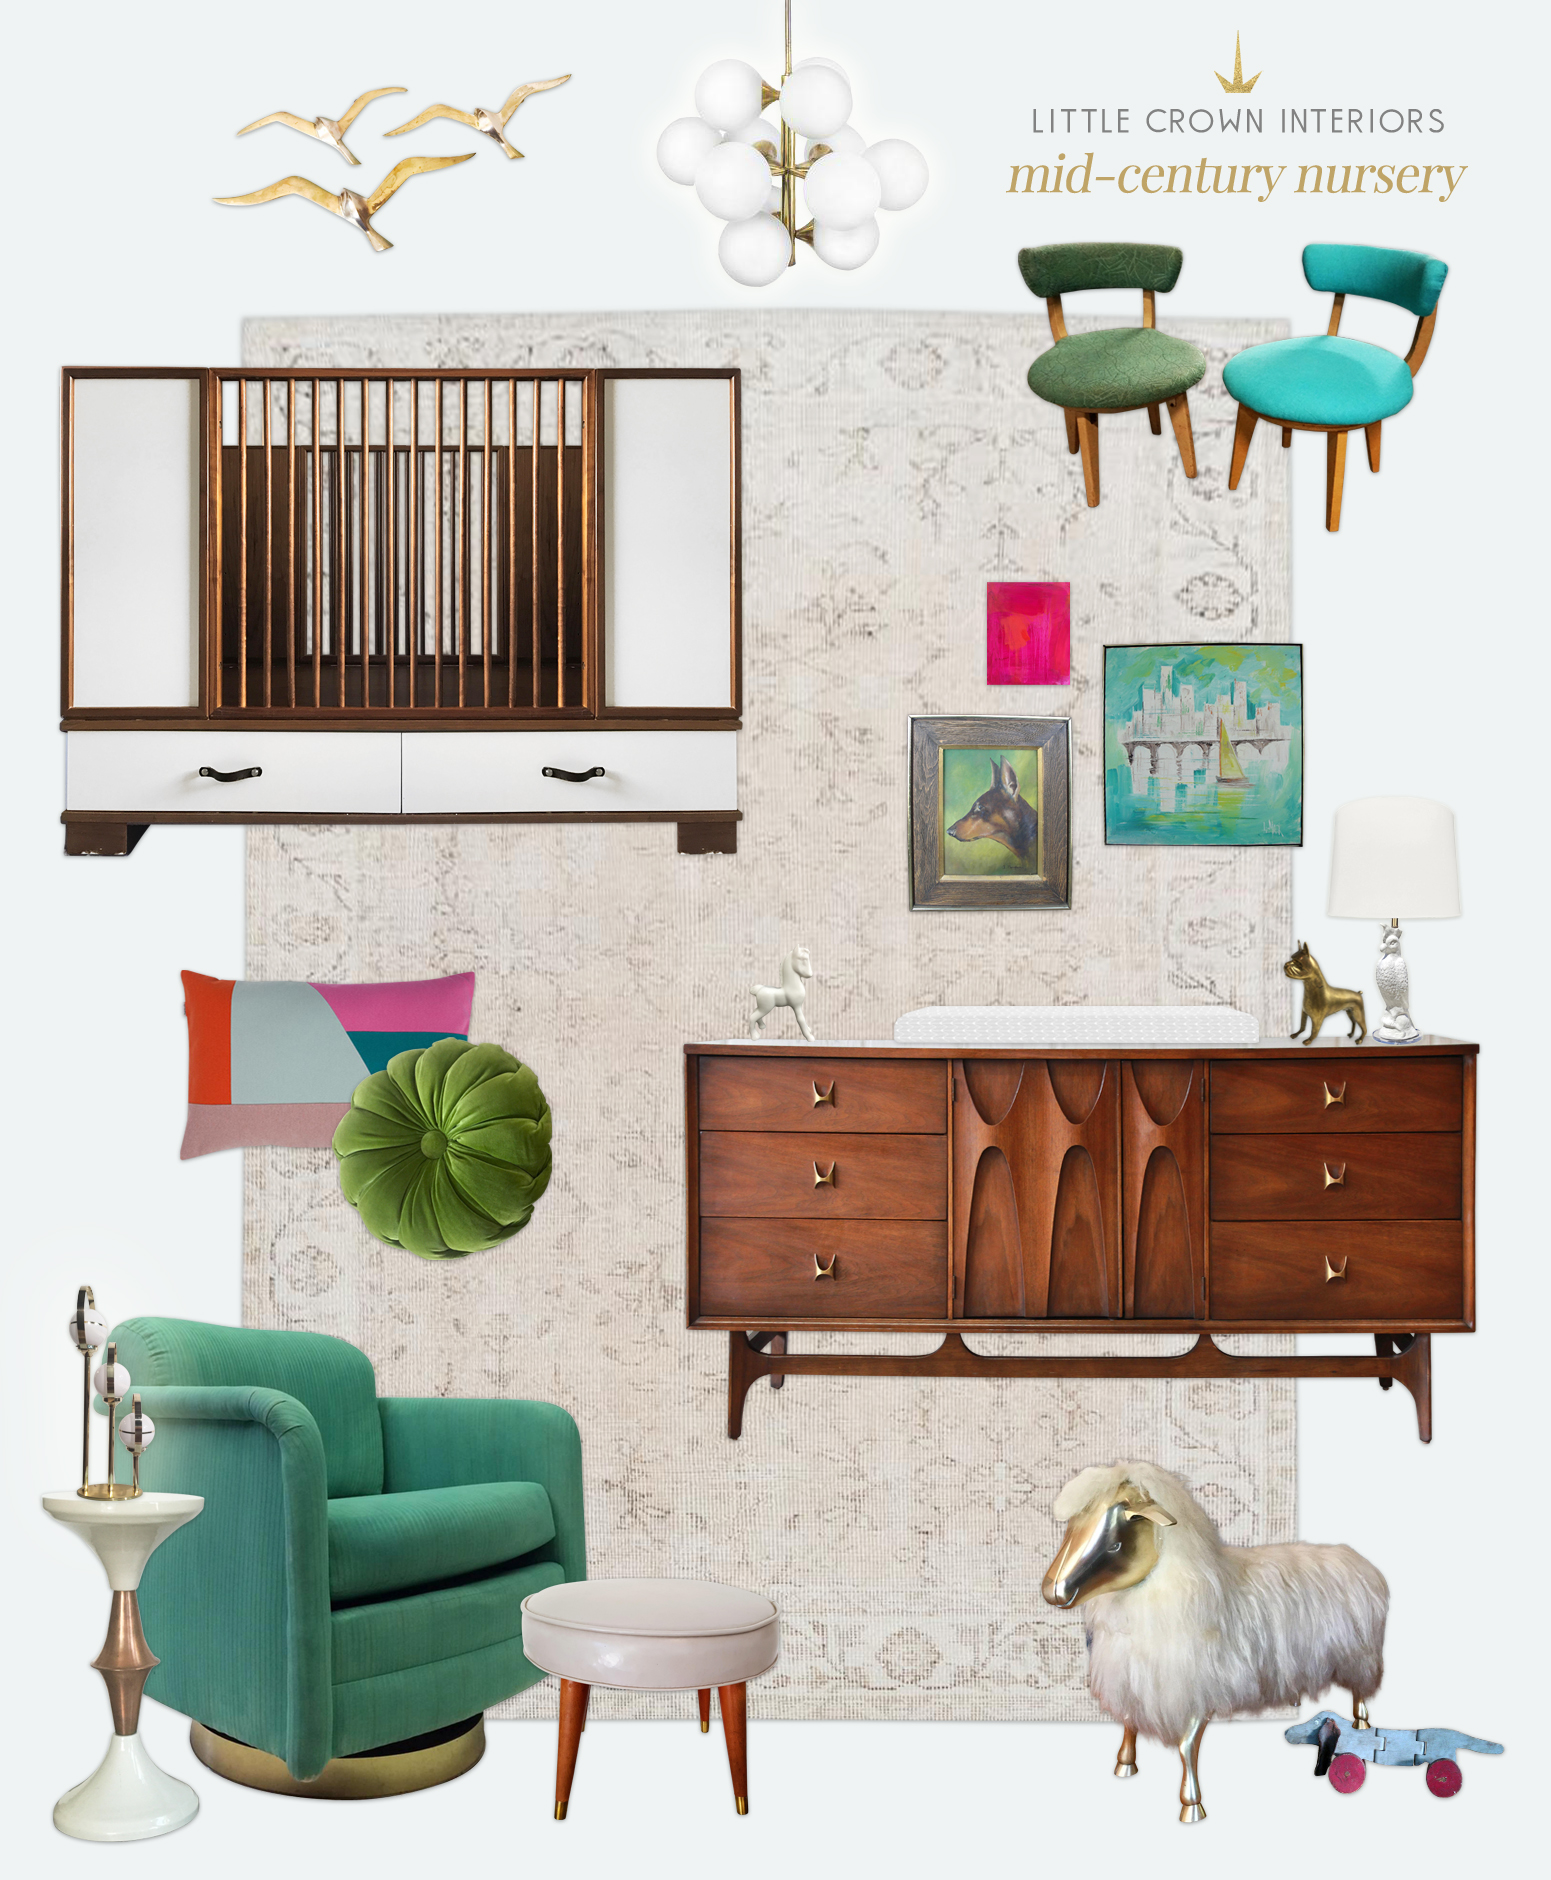 Charmant Mid Century Modern Nursery Design Board | Little Crown Interiors